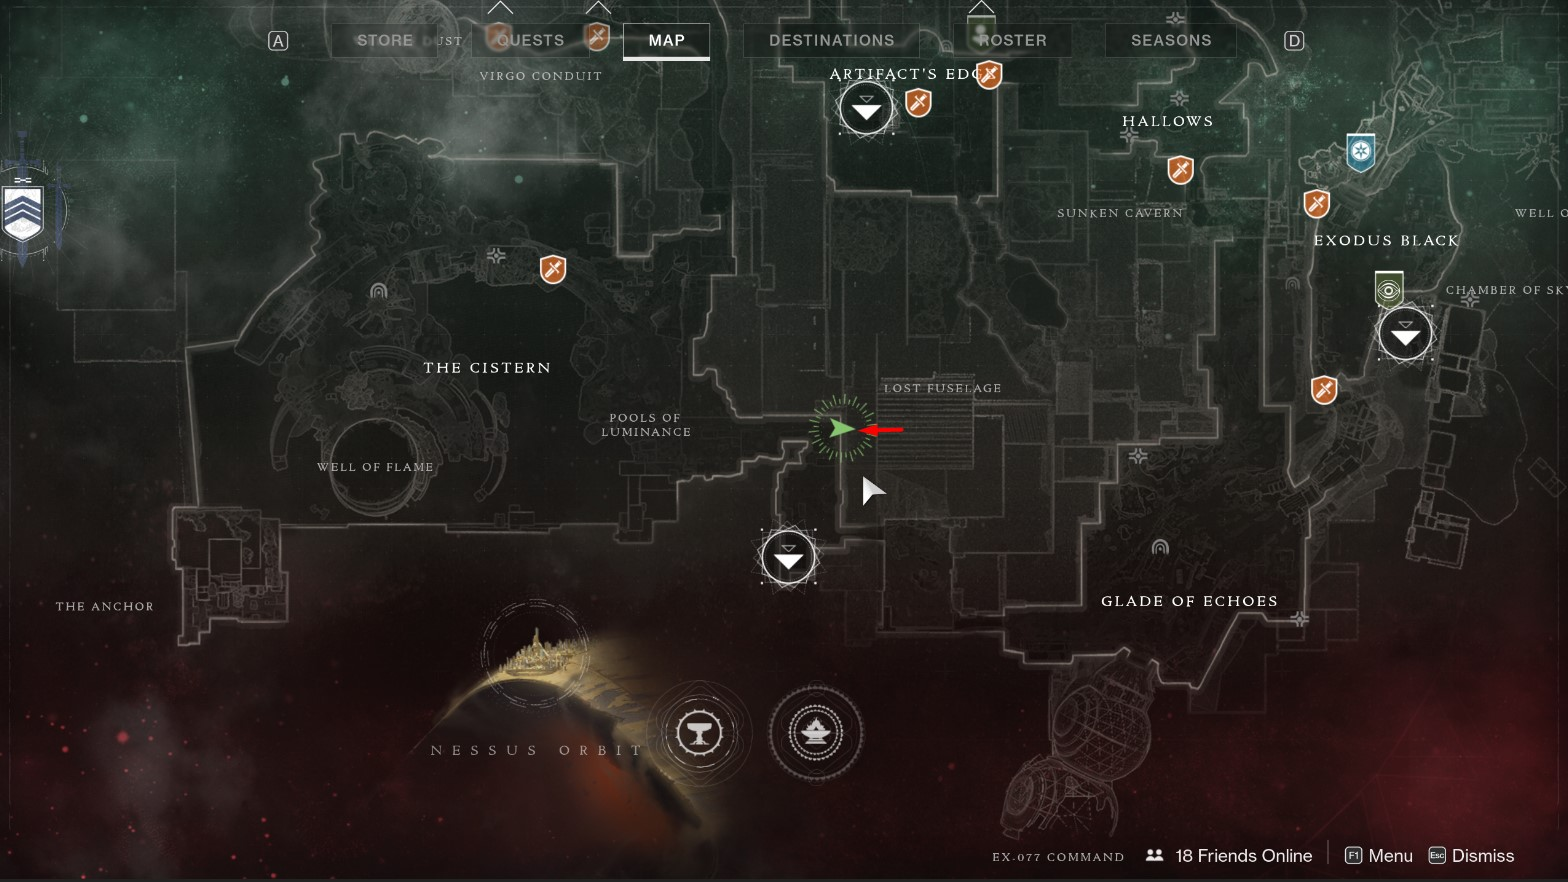 Saint-14 Ghost Location